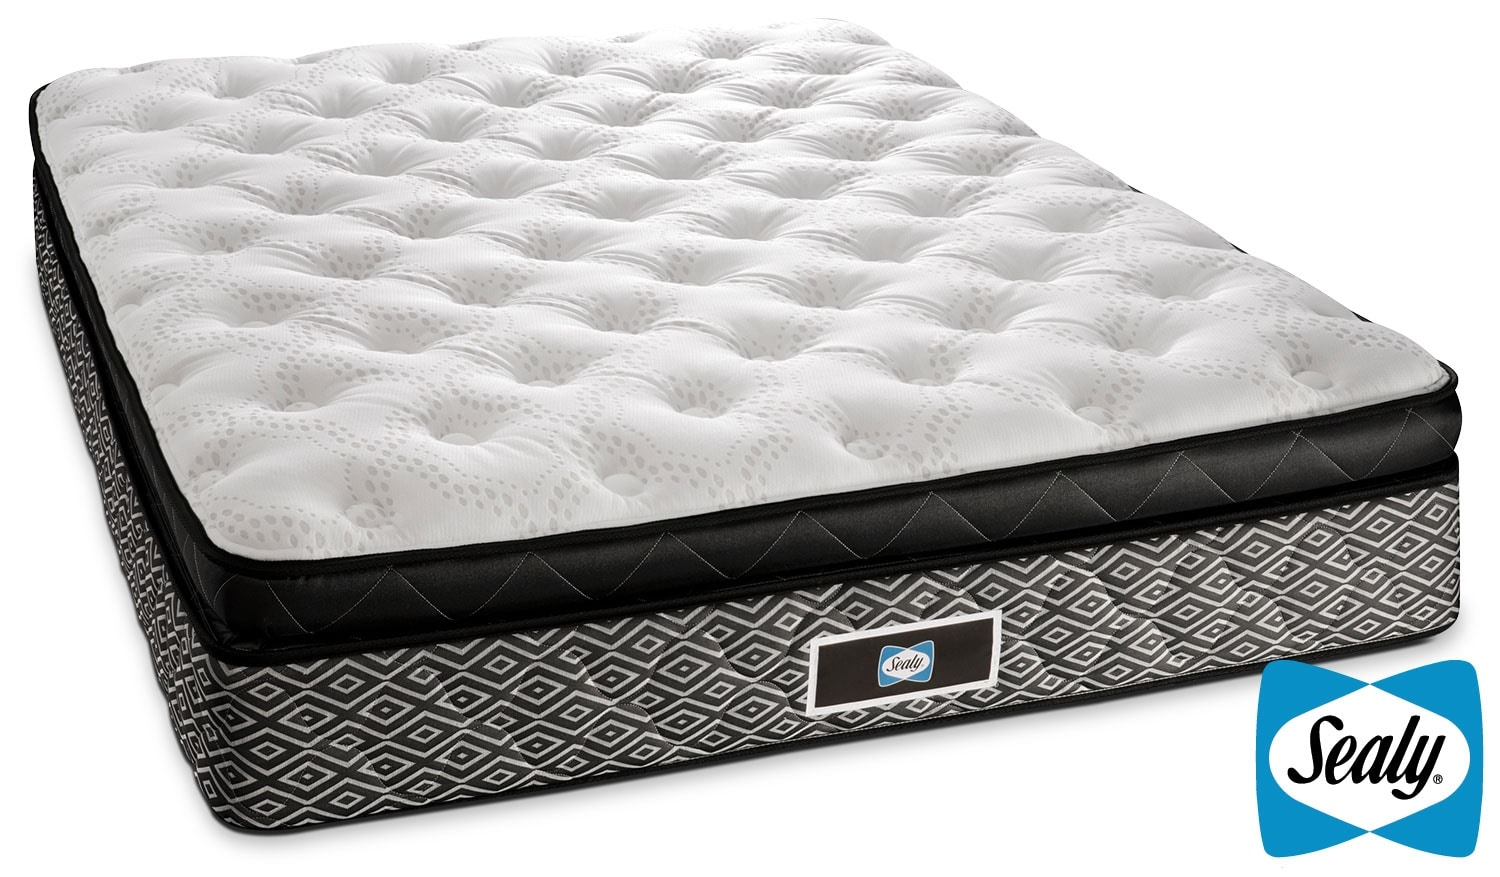 Sealy Echo Plush King Mattress